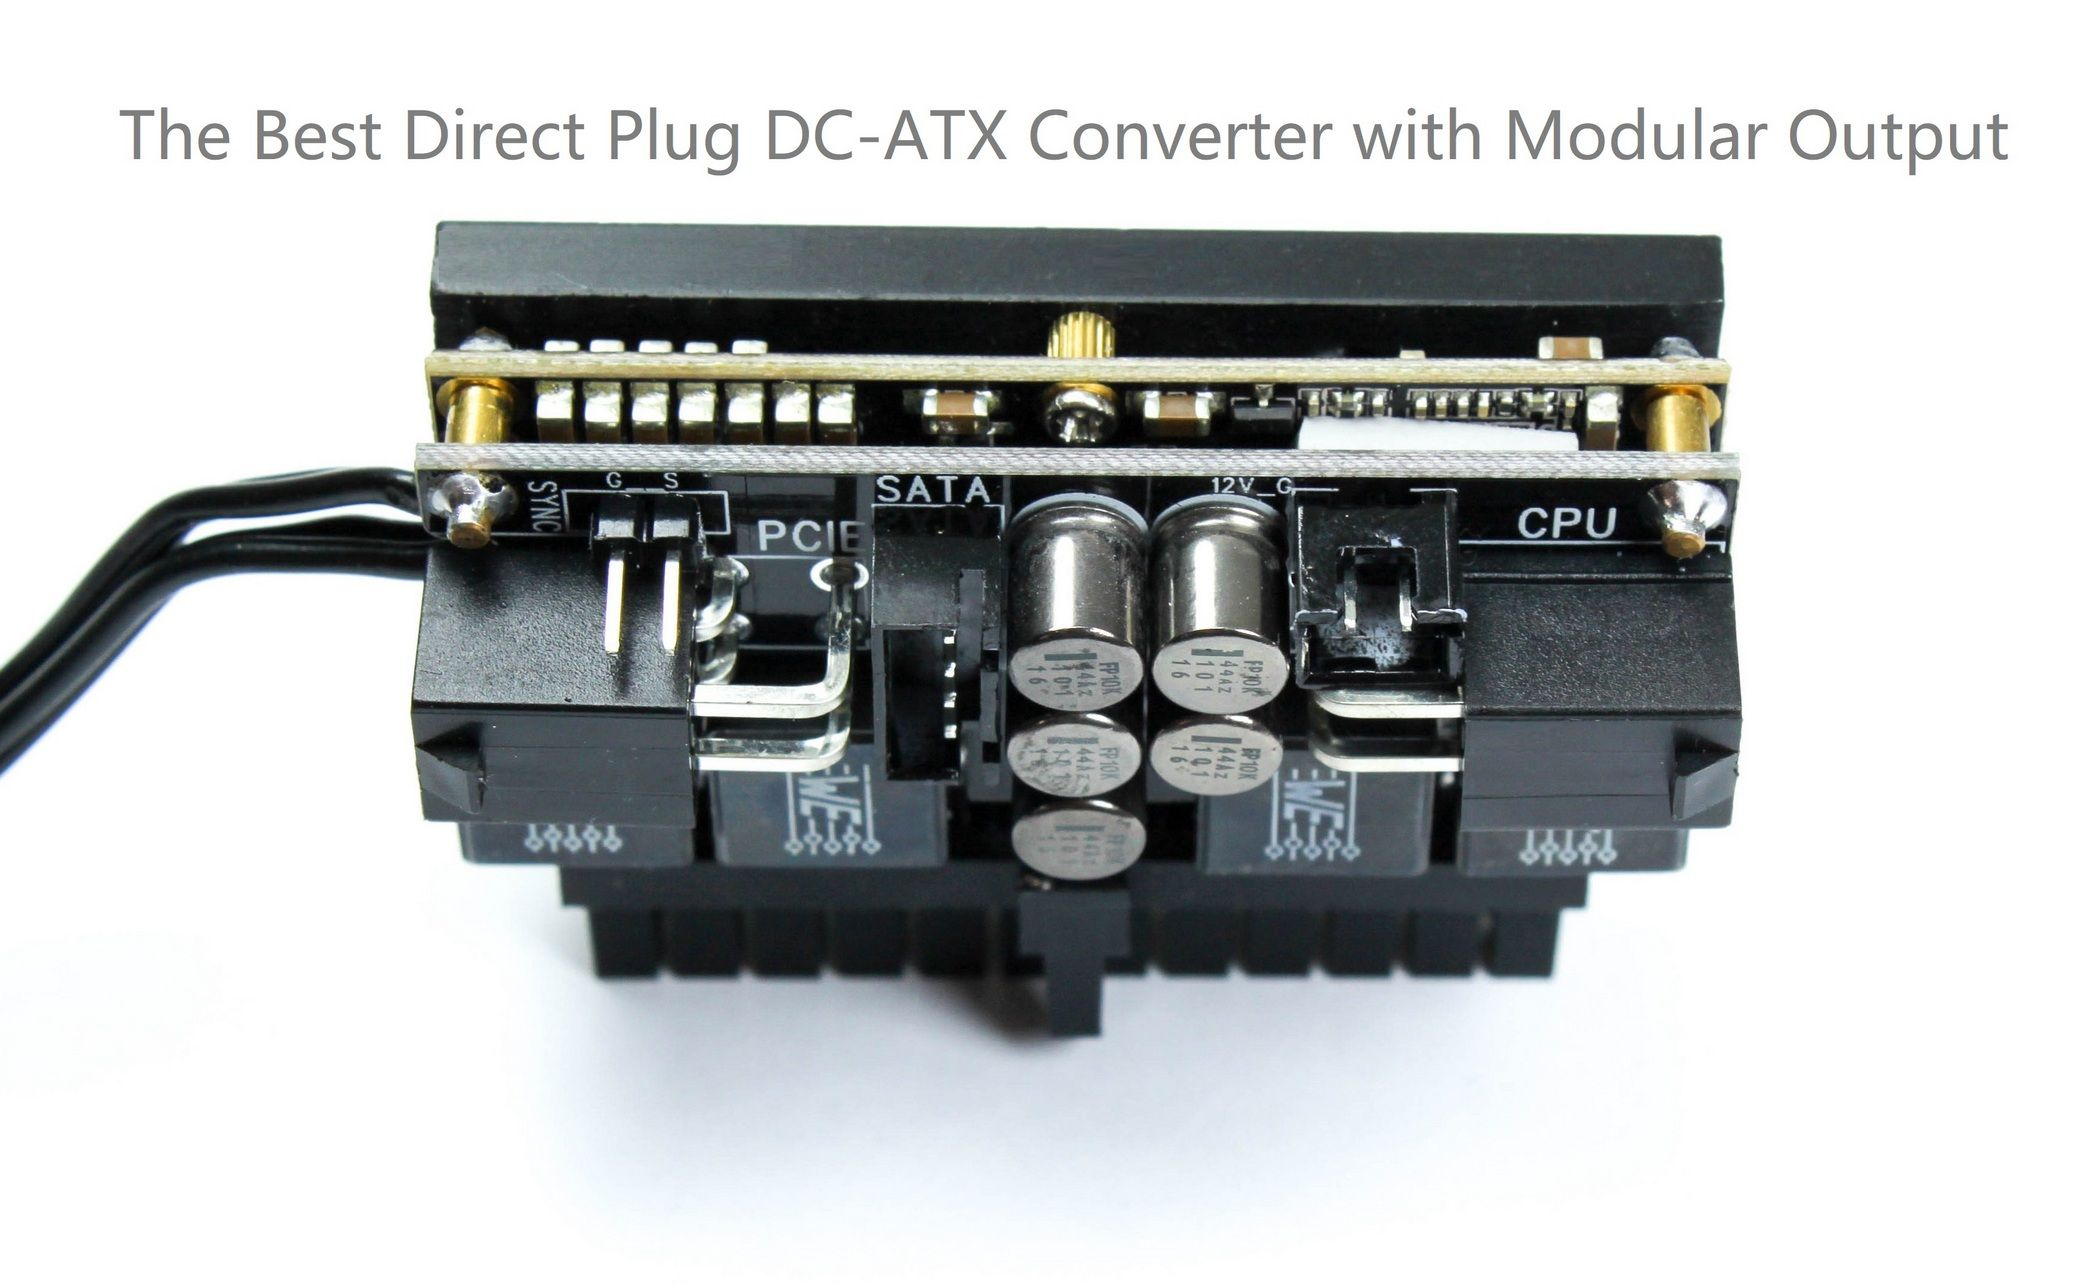 medium resolution of hdplex direct plug 160w dc atx converter